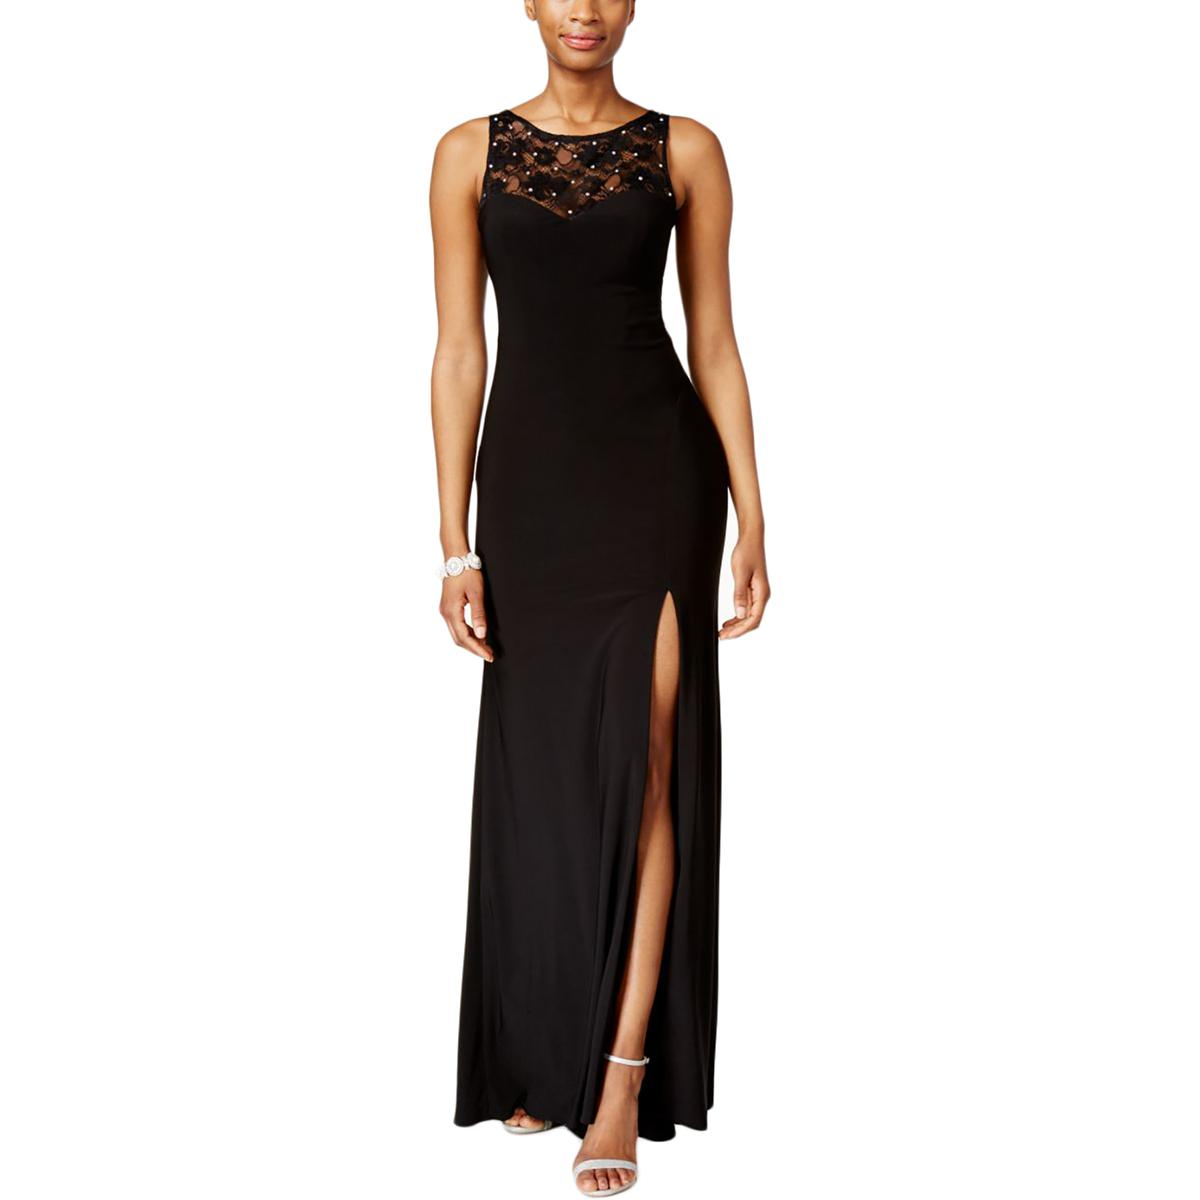 59068e13 Details about X by Xscape Womens Black Rhinestone Lace Formal Evening Dress  Gown 6 BHFO 1952